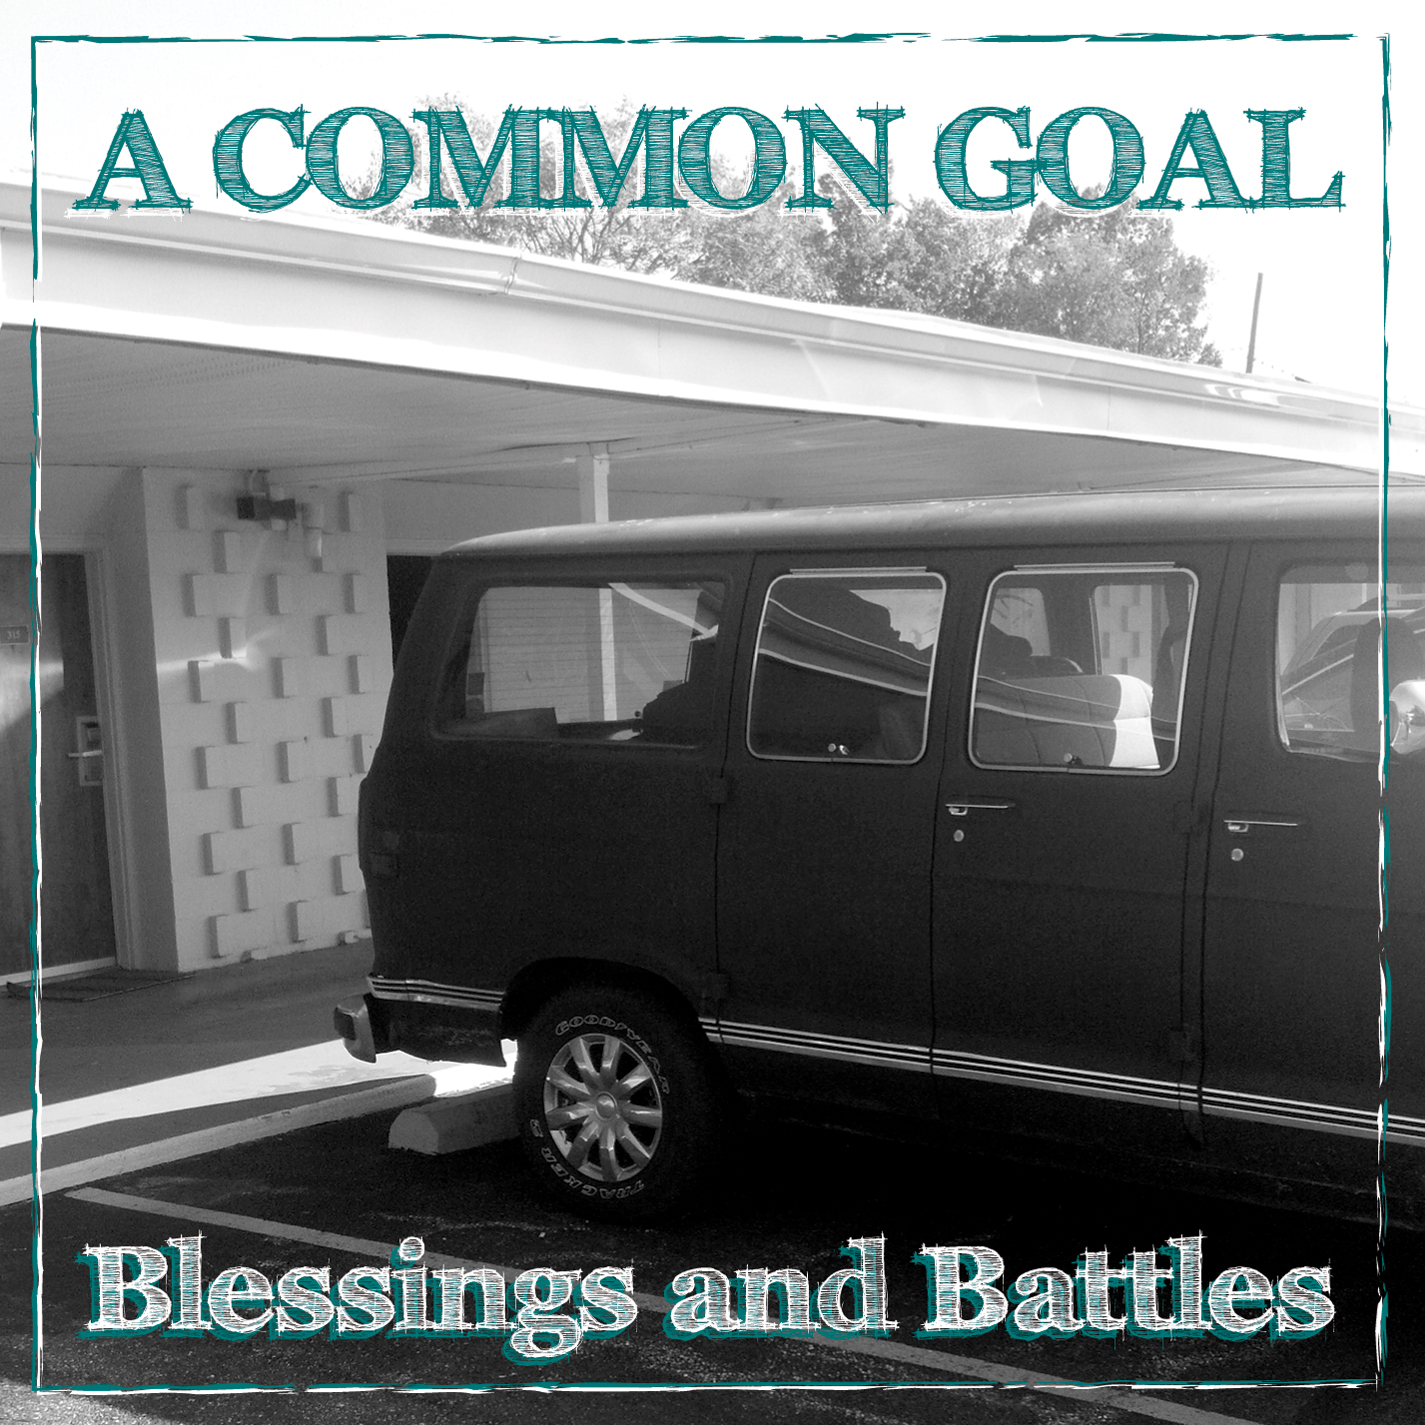 A Common Goal B&B cover.jpg